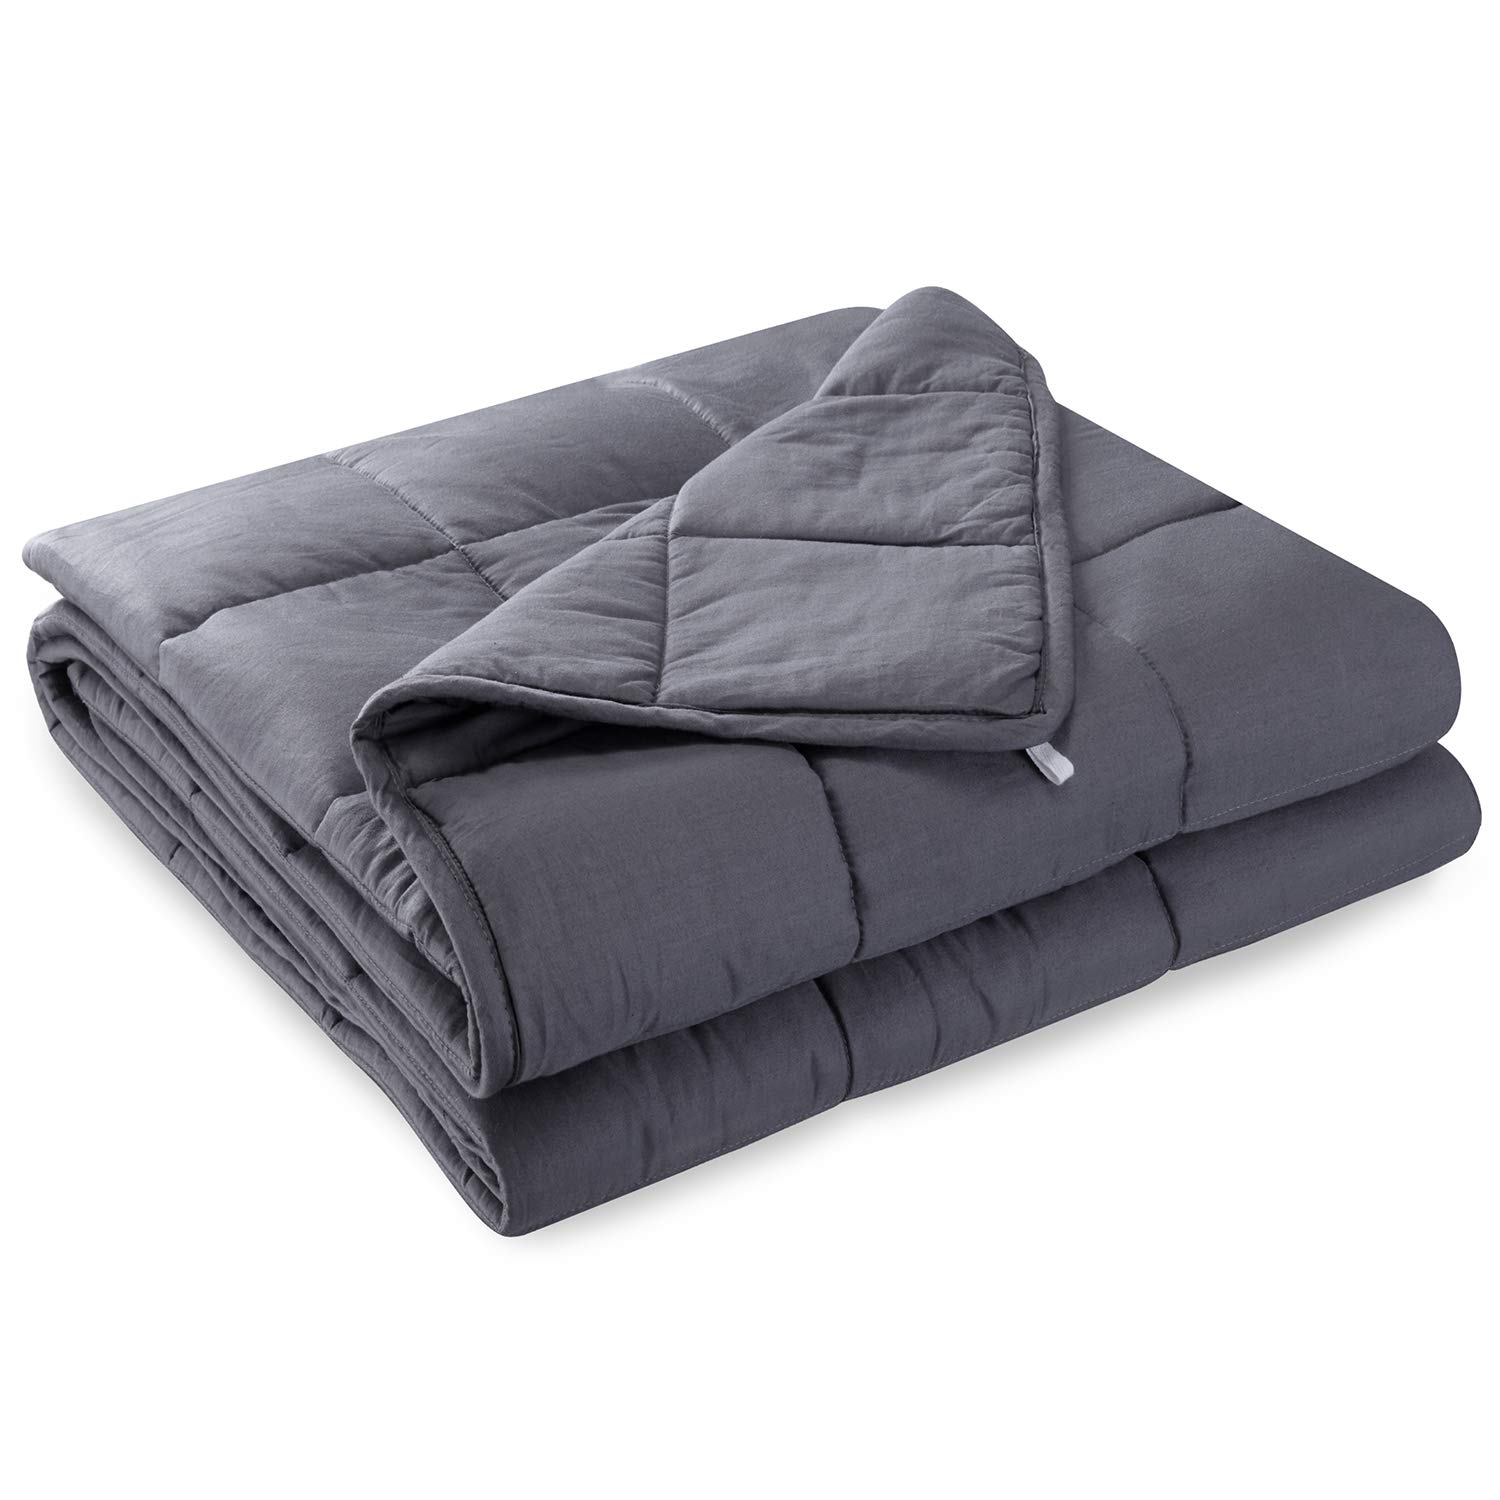 Softan Weighted Blanket For Adults Heavy Blanket Removable Cover 150x200cm 6.8kg